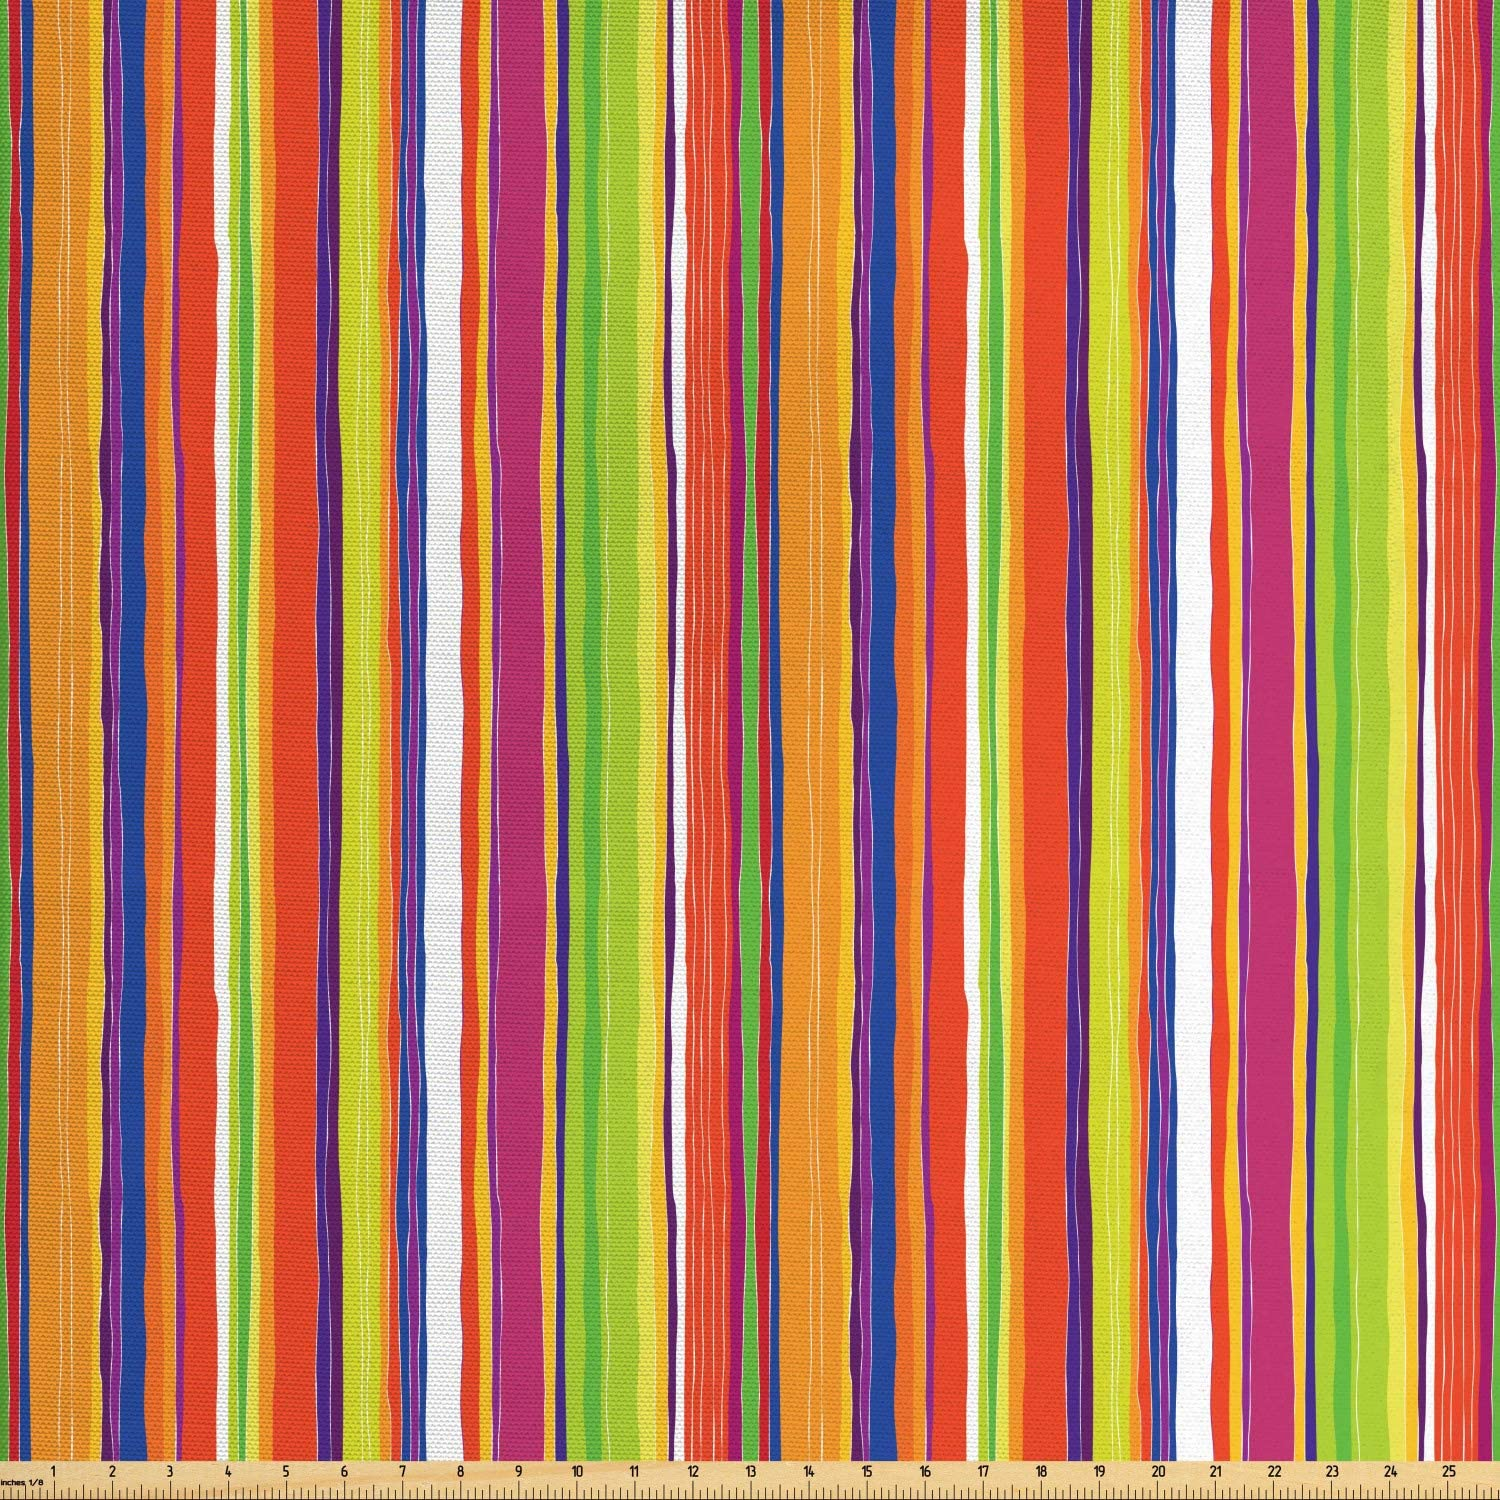 Ambesonne Stripes Fabric by The Yard, Hand Drawn Barcode Style Lines Rainbow Colored Abstract Geometric Illustration, Decorative Fabric for Upholstery and Home Accents, 1 Yard, Green Orange